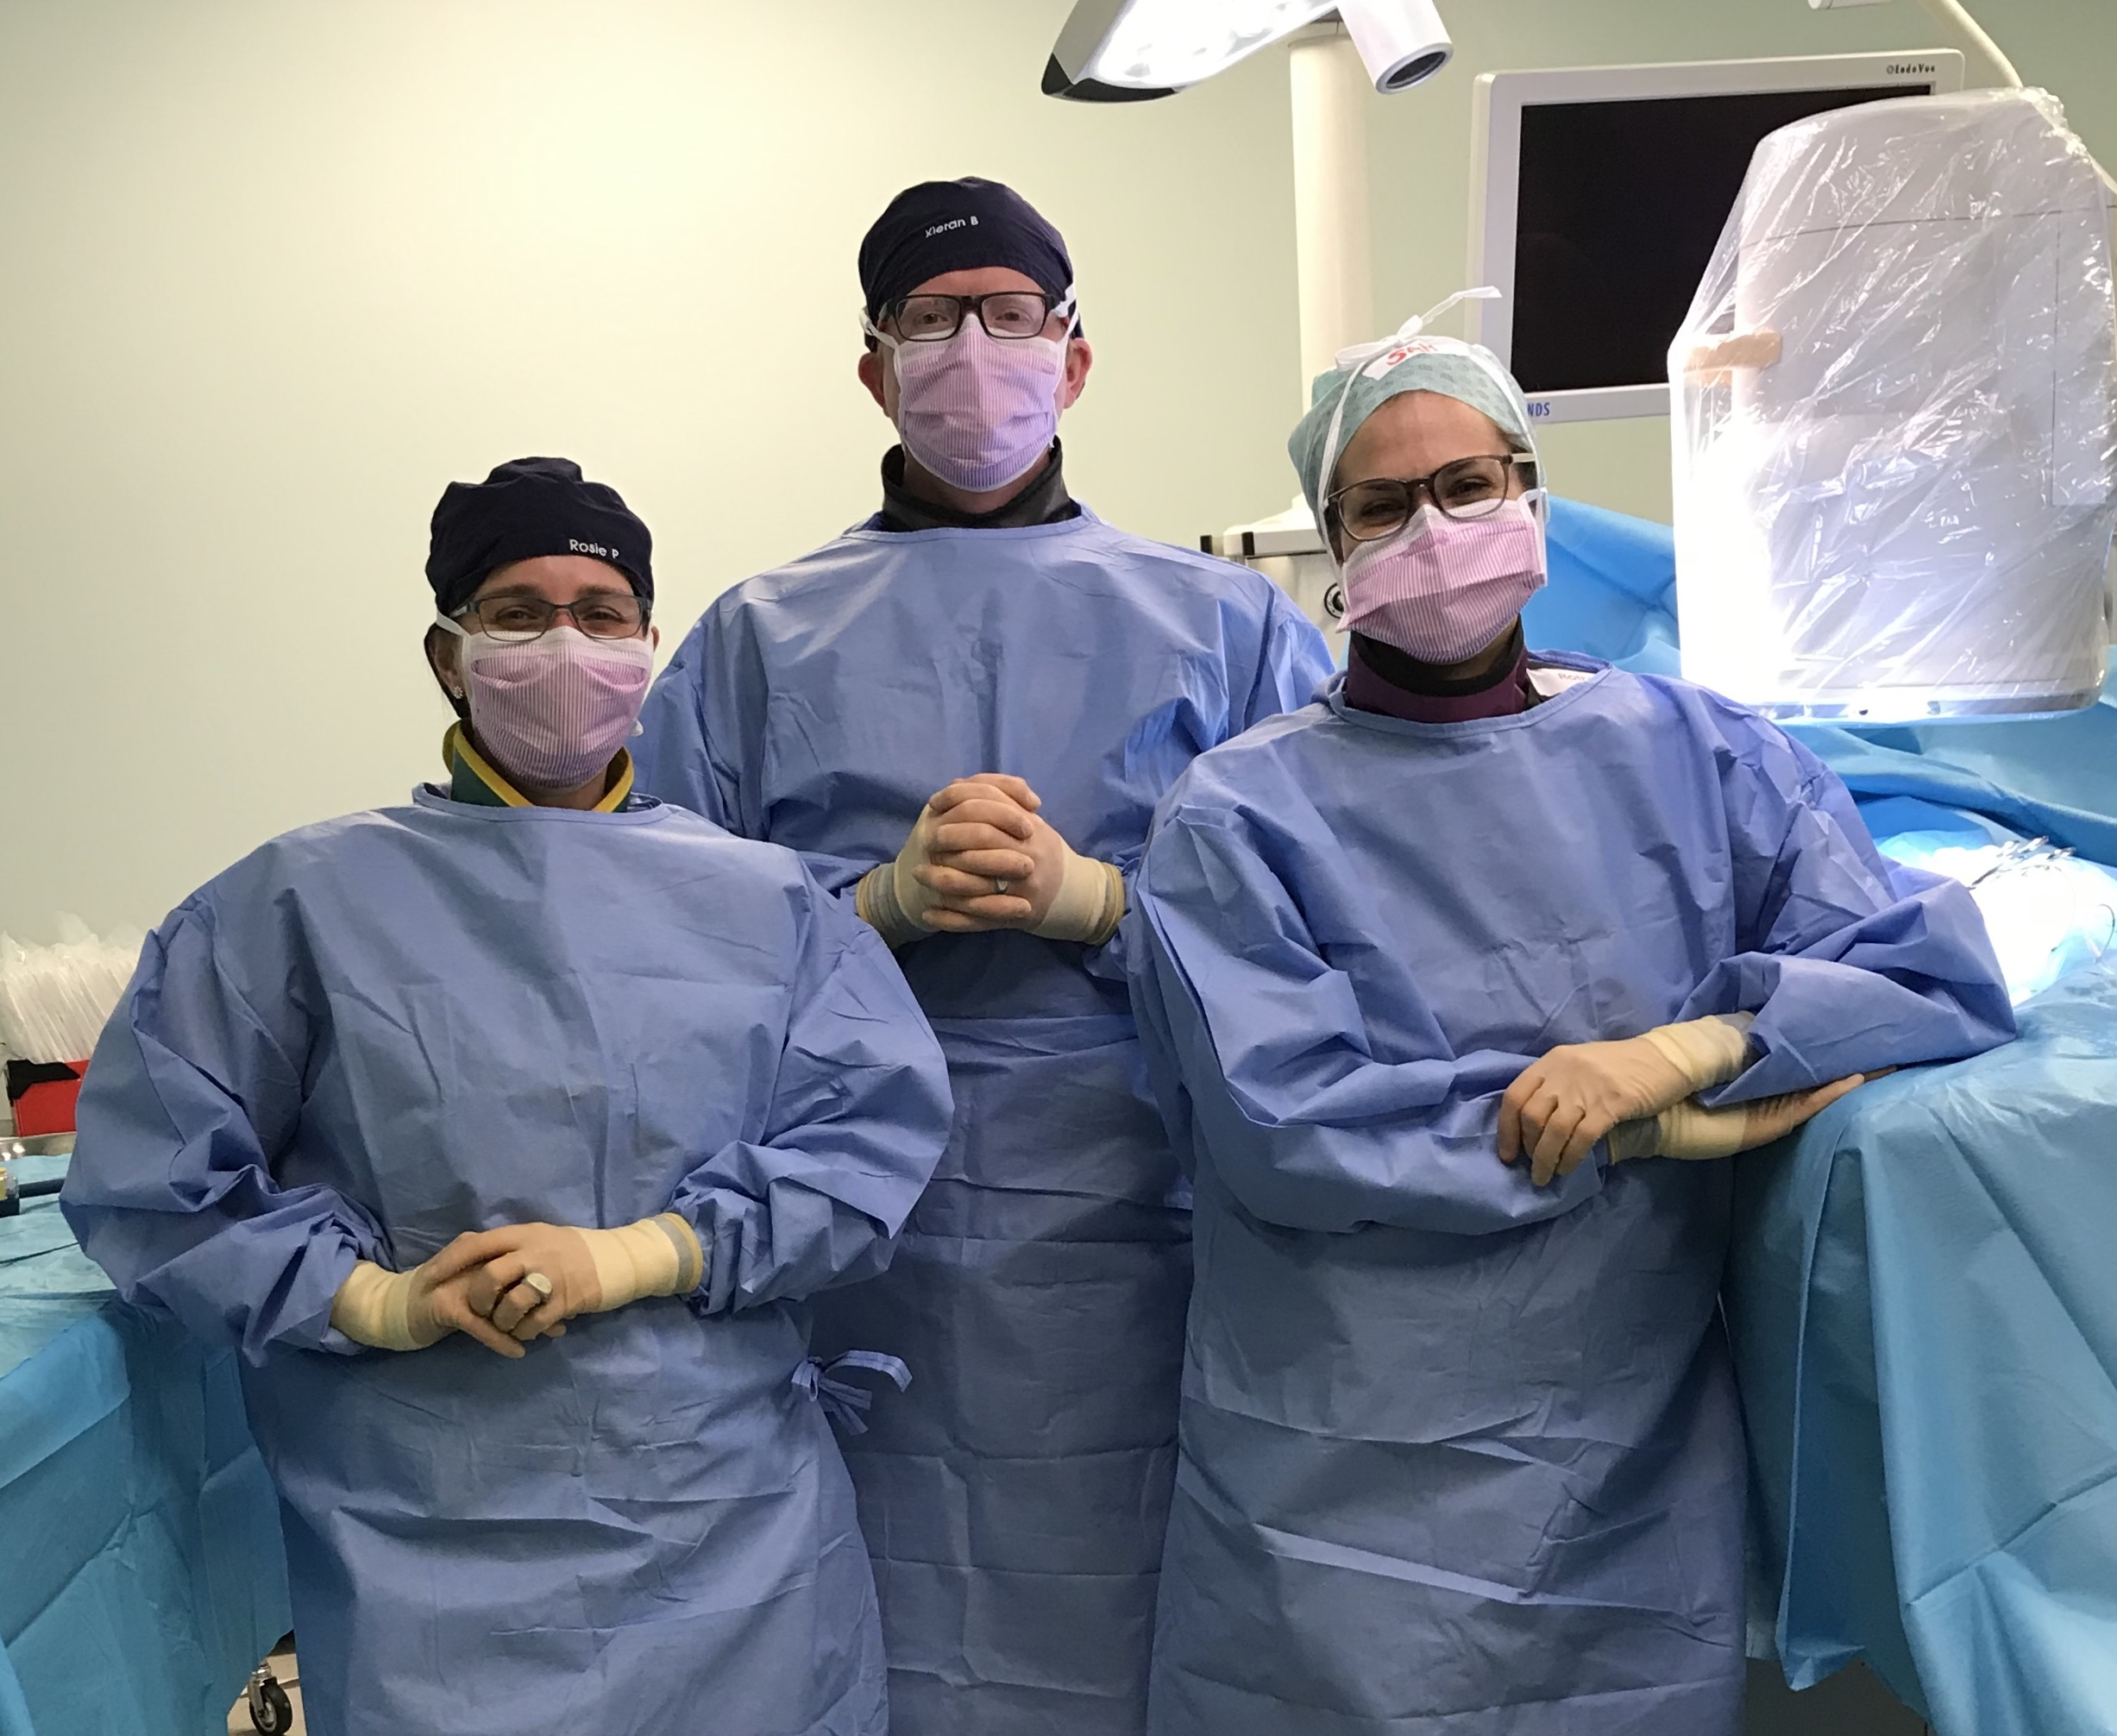 Team photo from one of the cardio interventional procedures